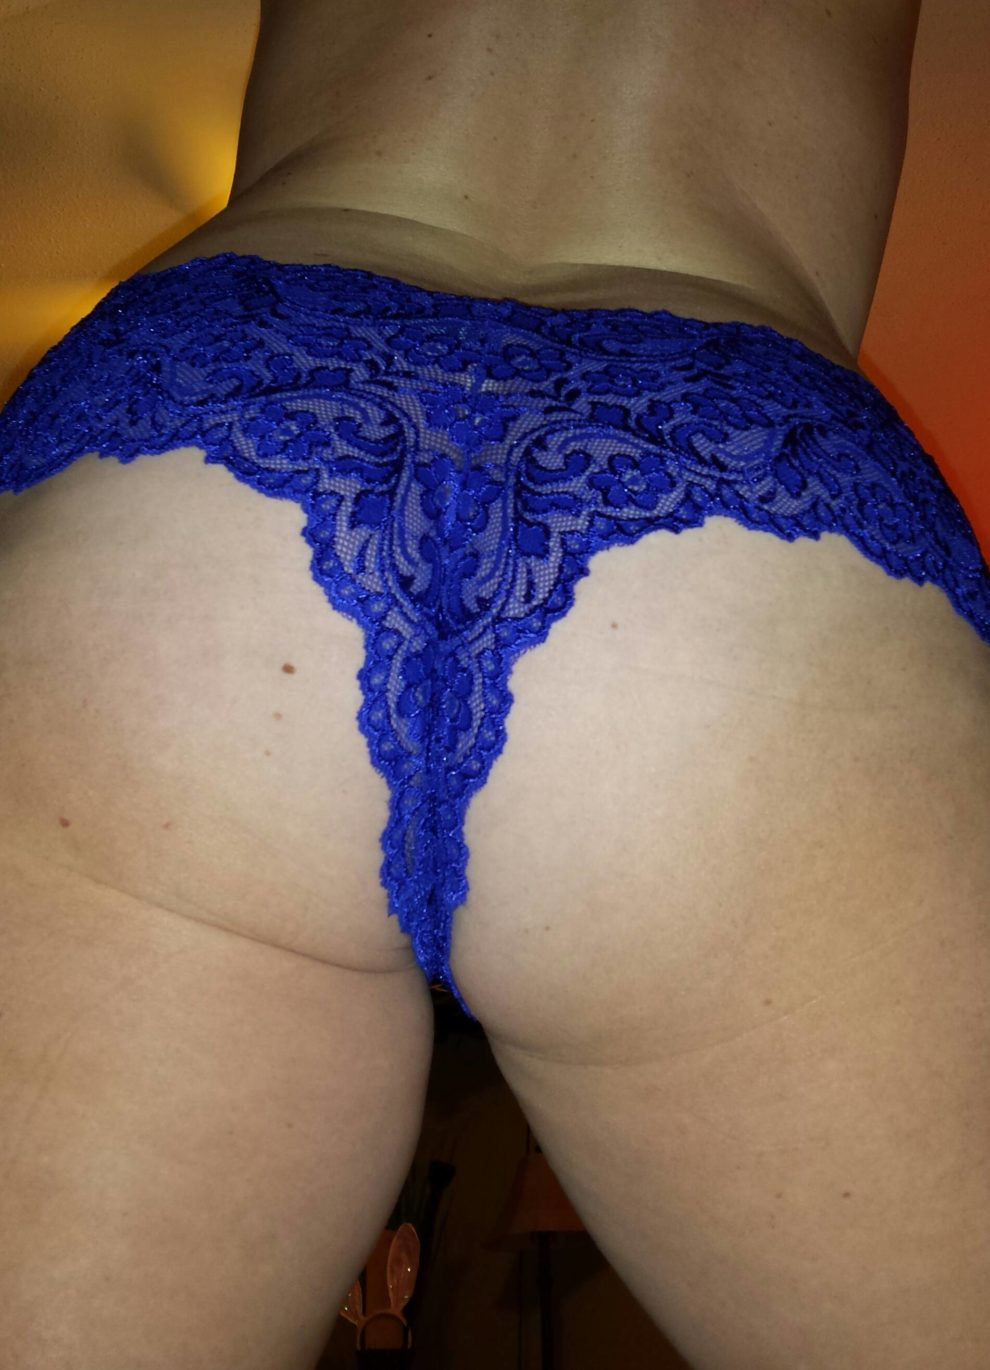 Tangled up in (f) blue